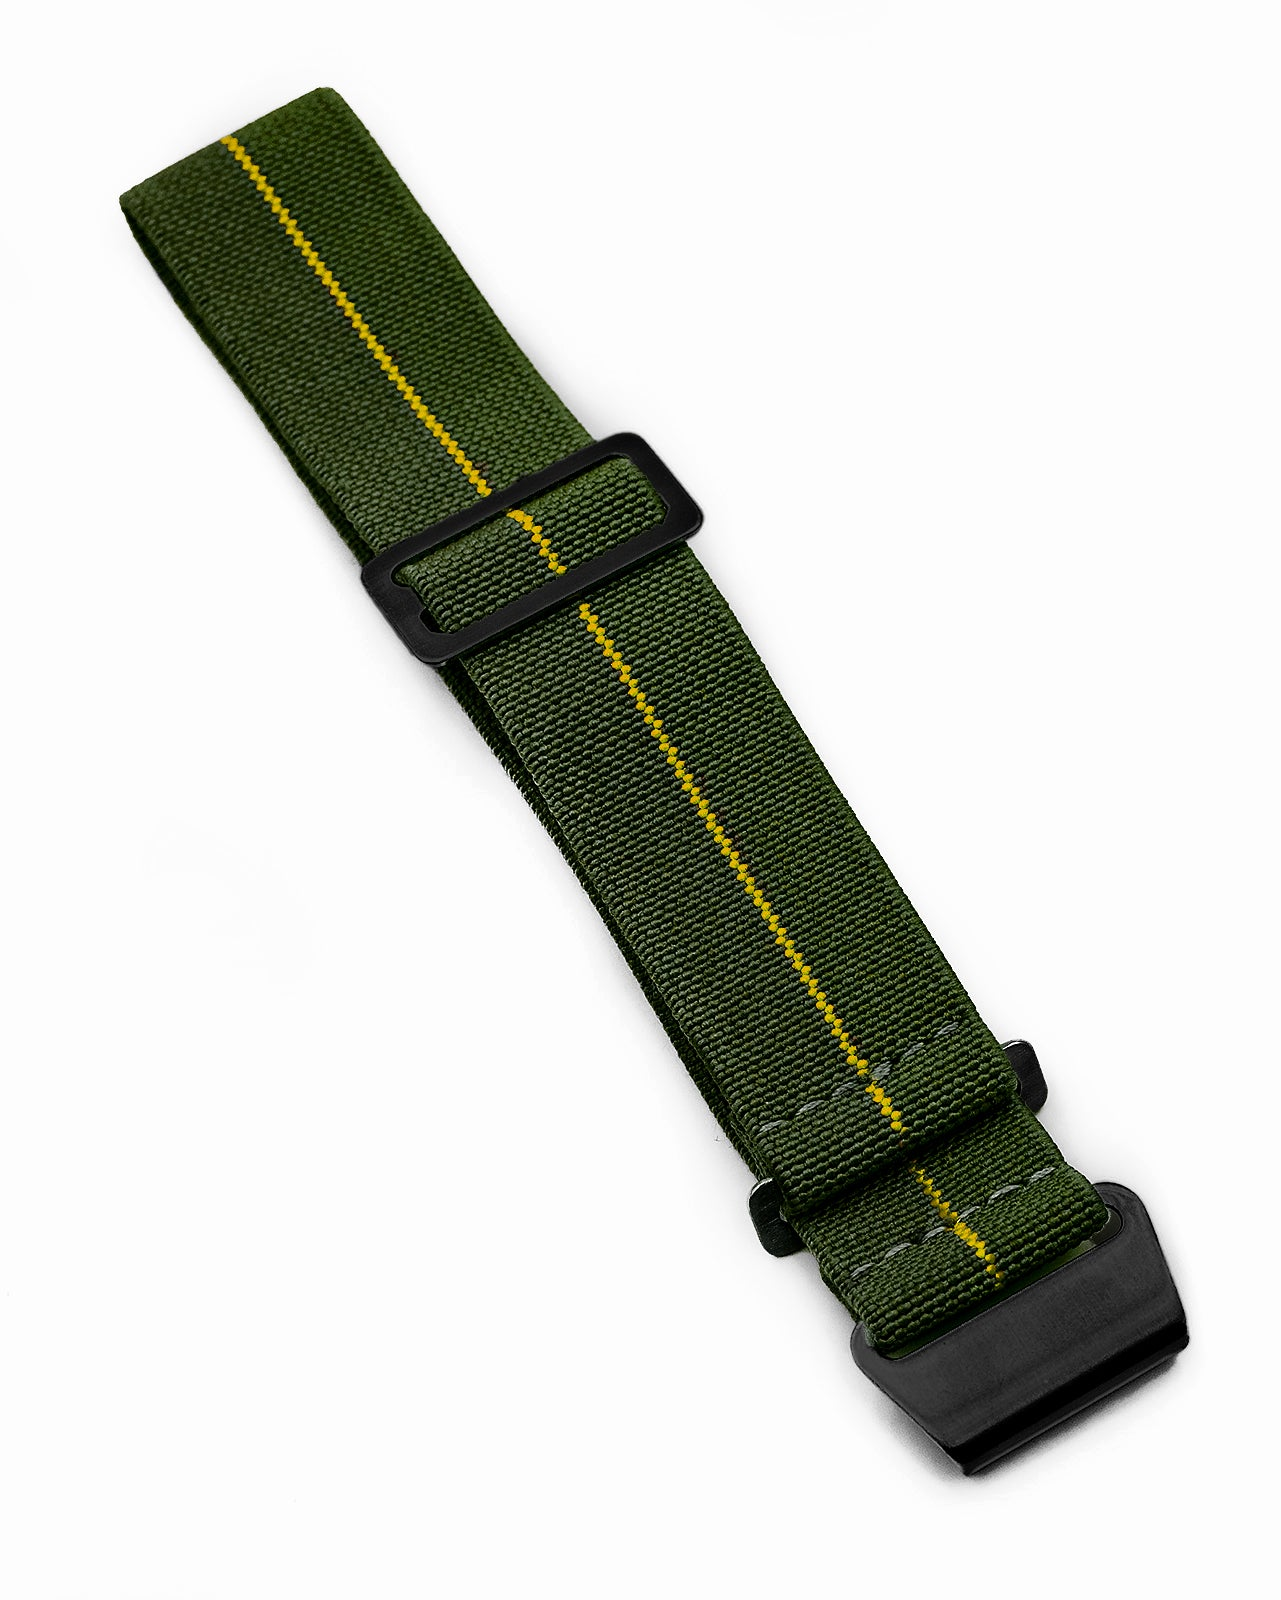 PARA Elastic (Stealth) - Olive Green with Yellow Centerline